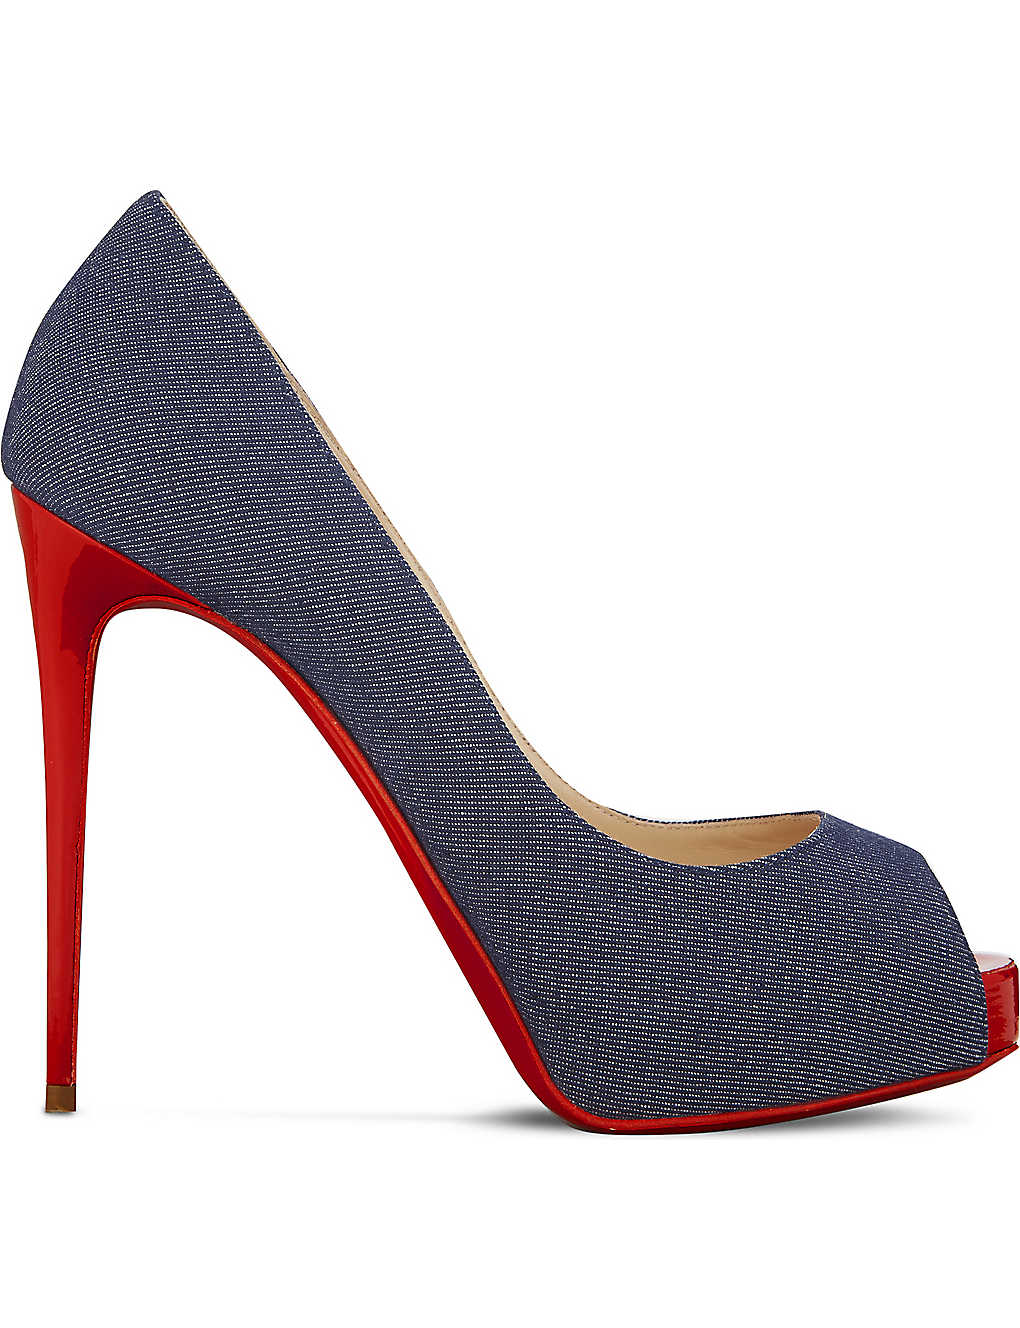 finest selection 0be0c f34ac CHRISTIAN LOUBOUTIN - New Very Prive 120 denim/patent toe ...